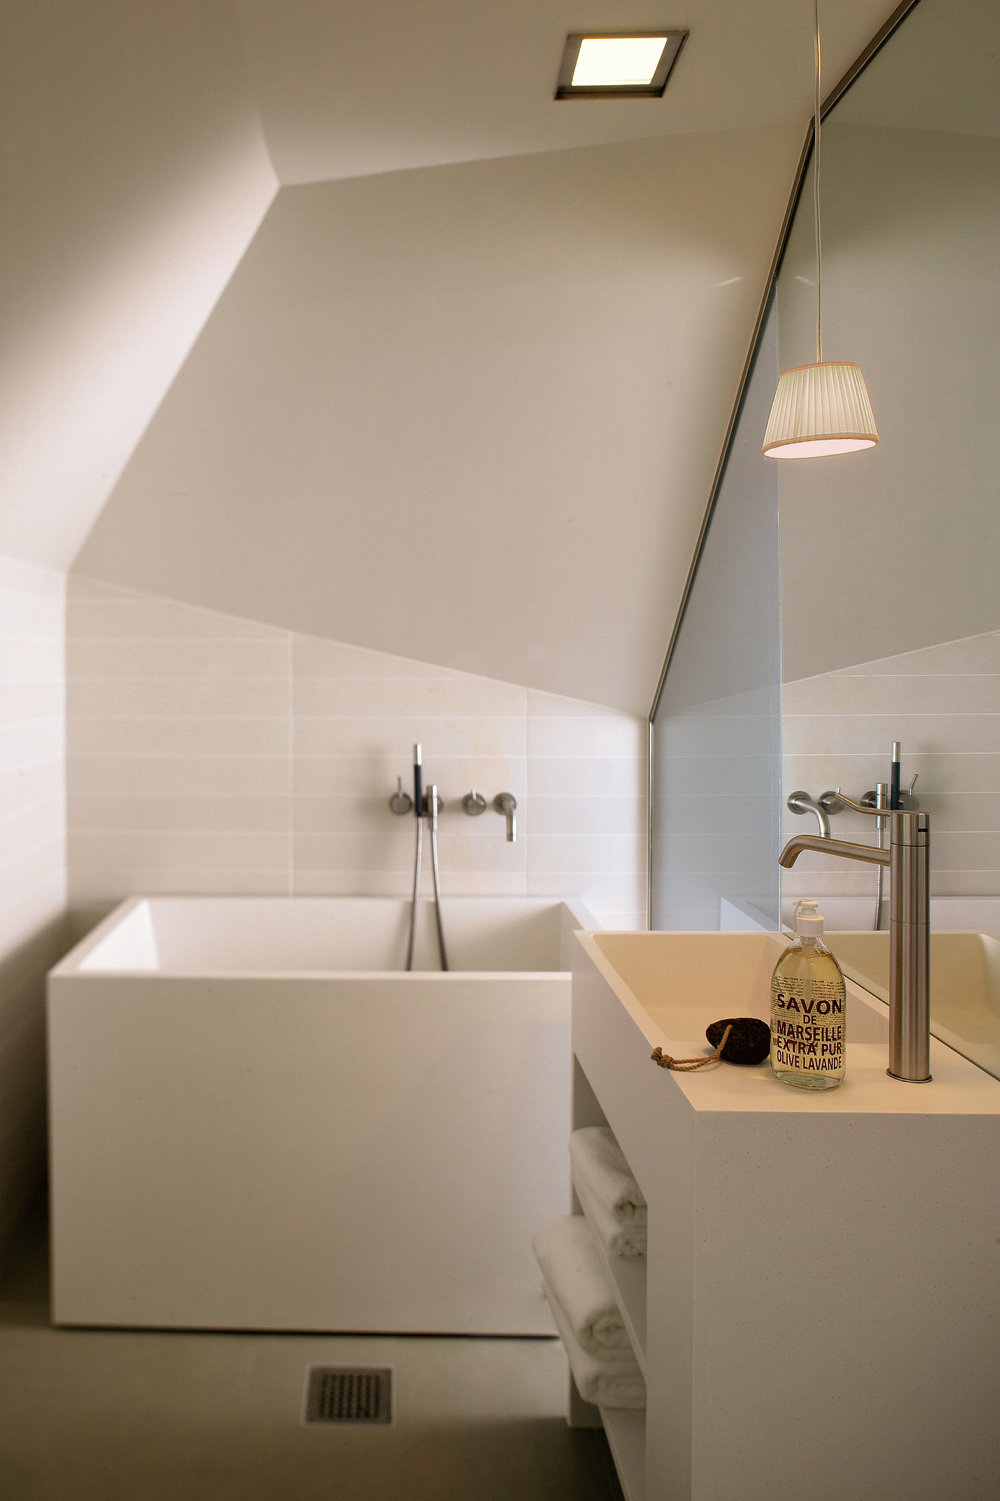 Hotel Brosundet Ålesund Norway, hotel room, modern and sharp bathroom with cream tiles and frosted glass, interior design by GARDE. Mads Emil Garde